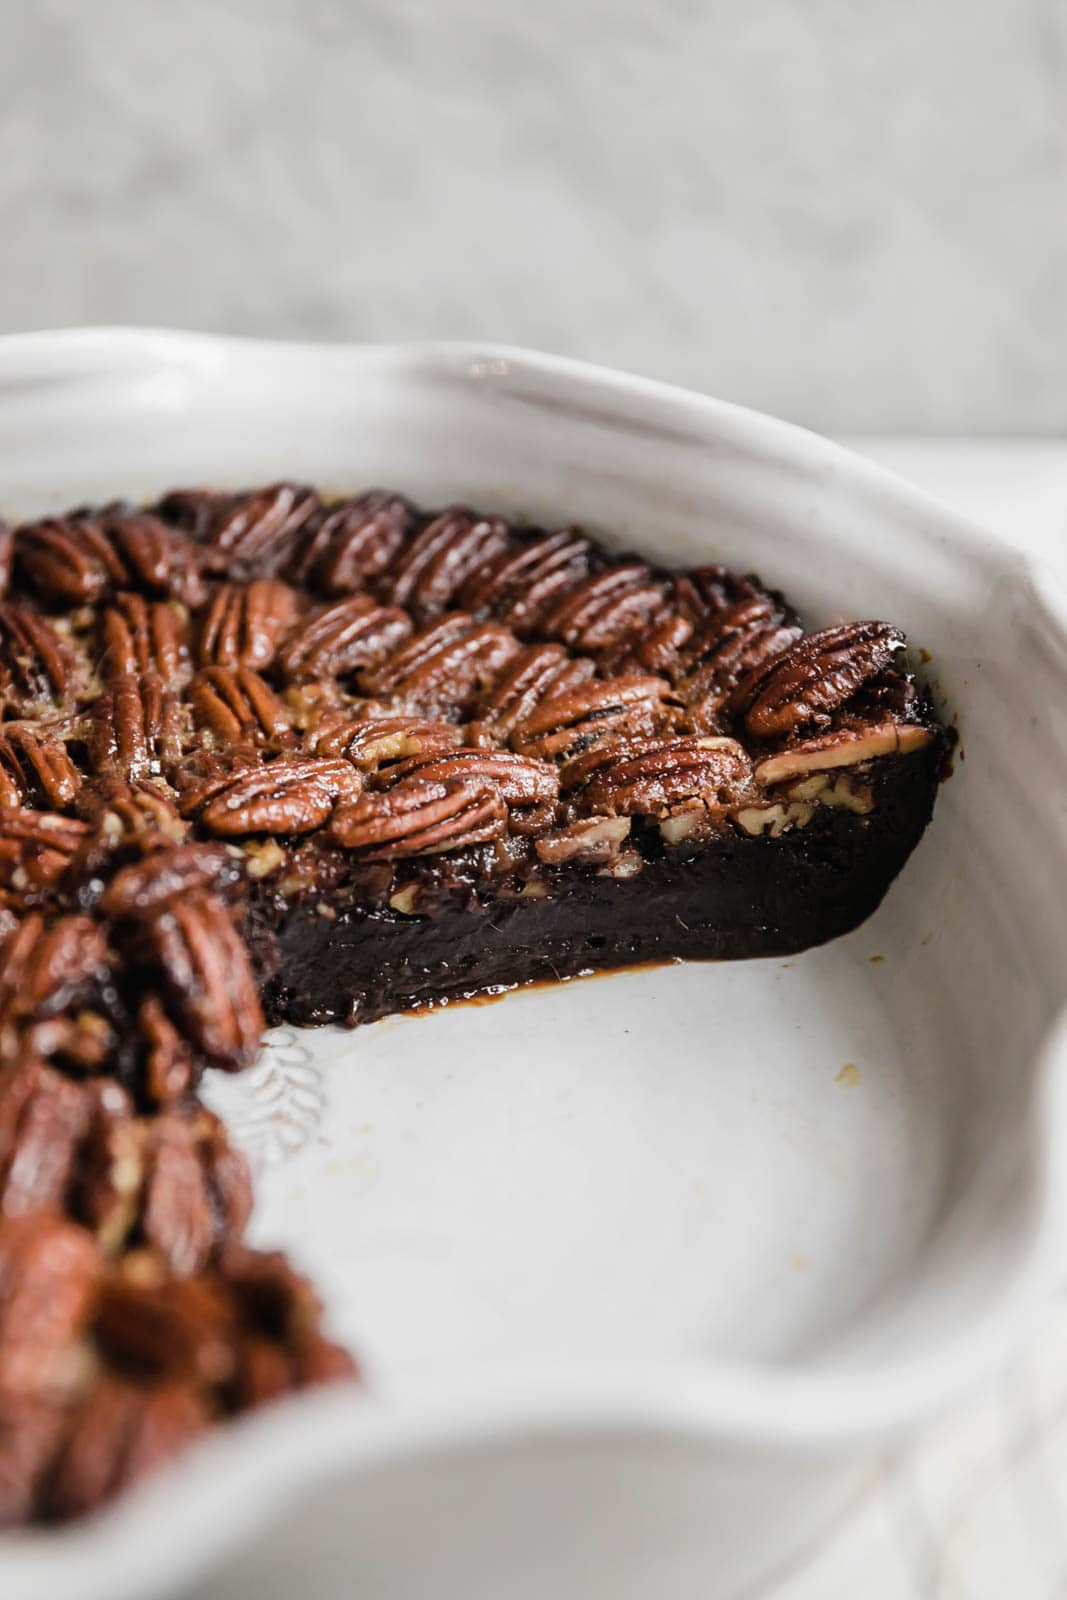 Brownie Pecan Pie sliced